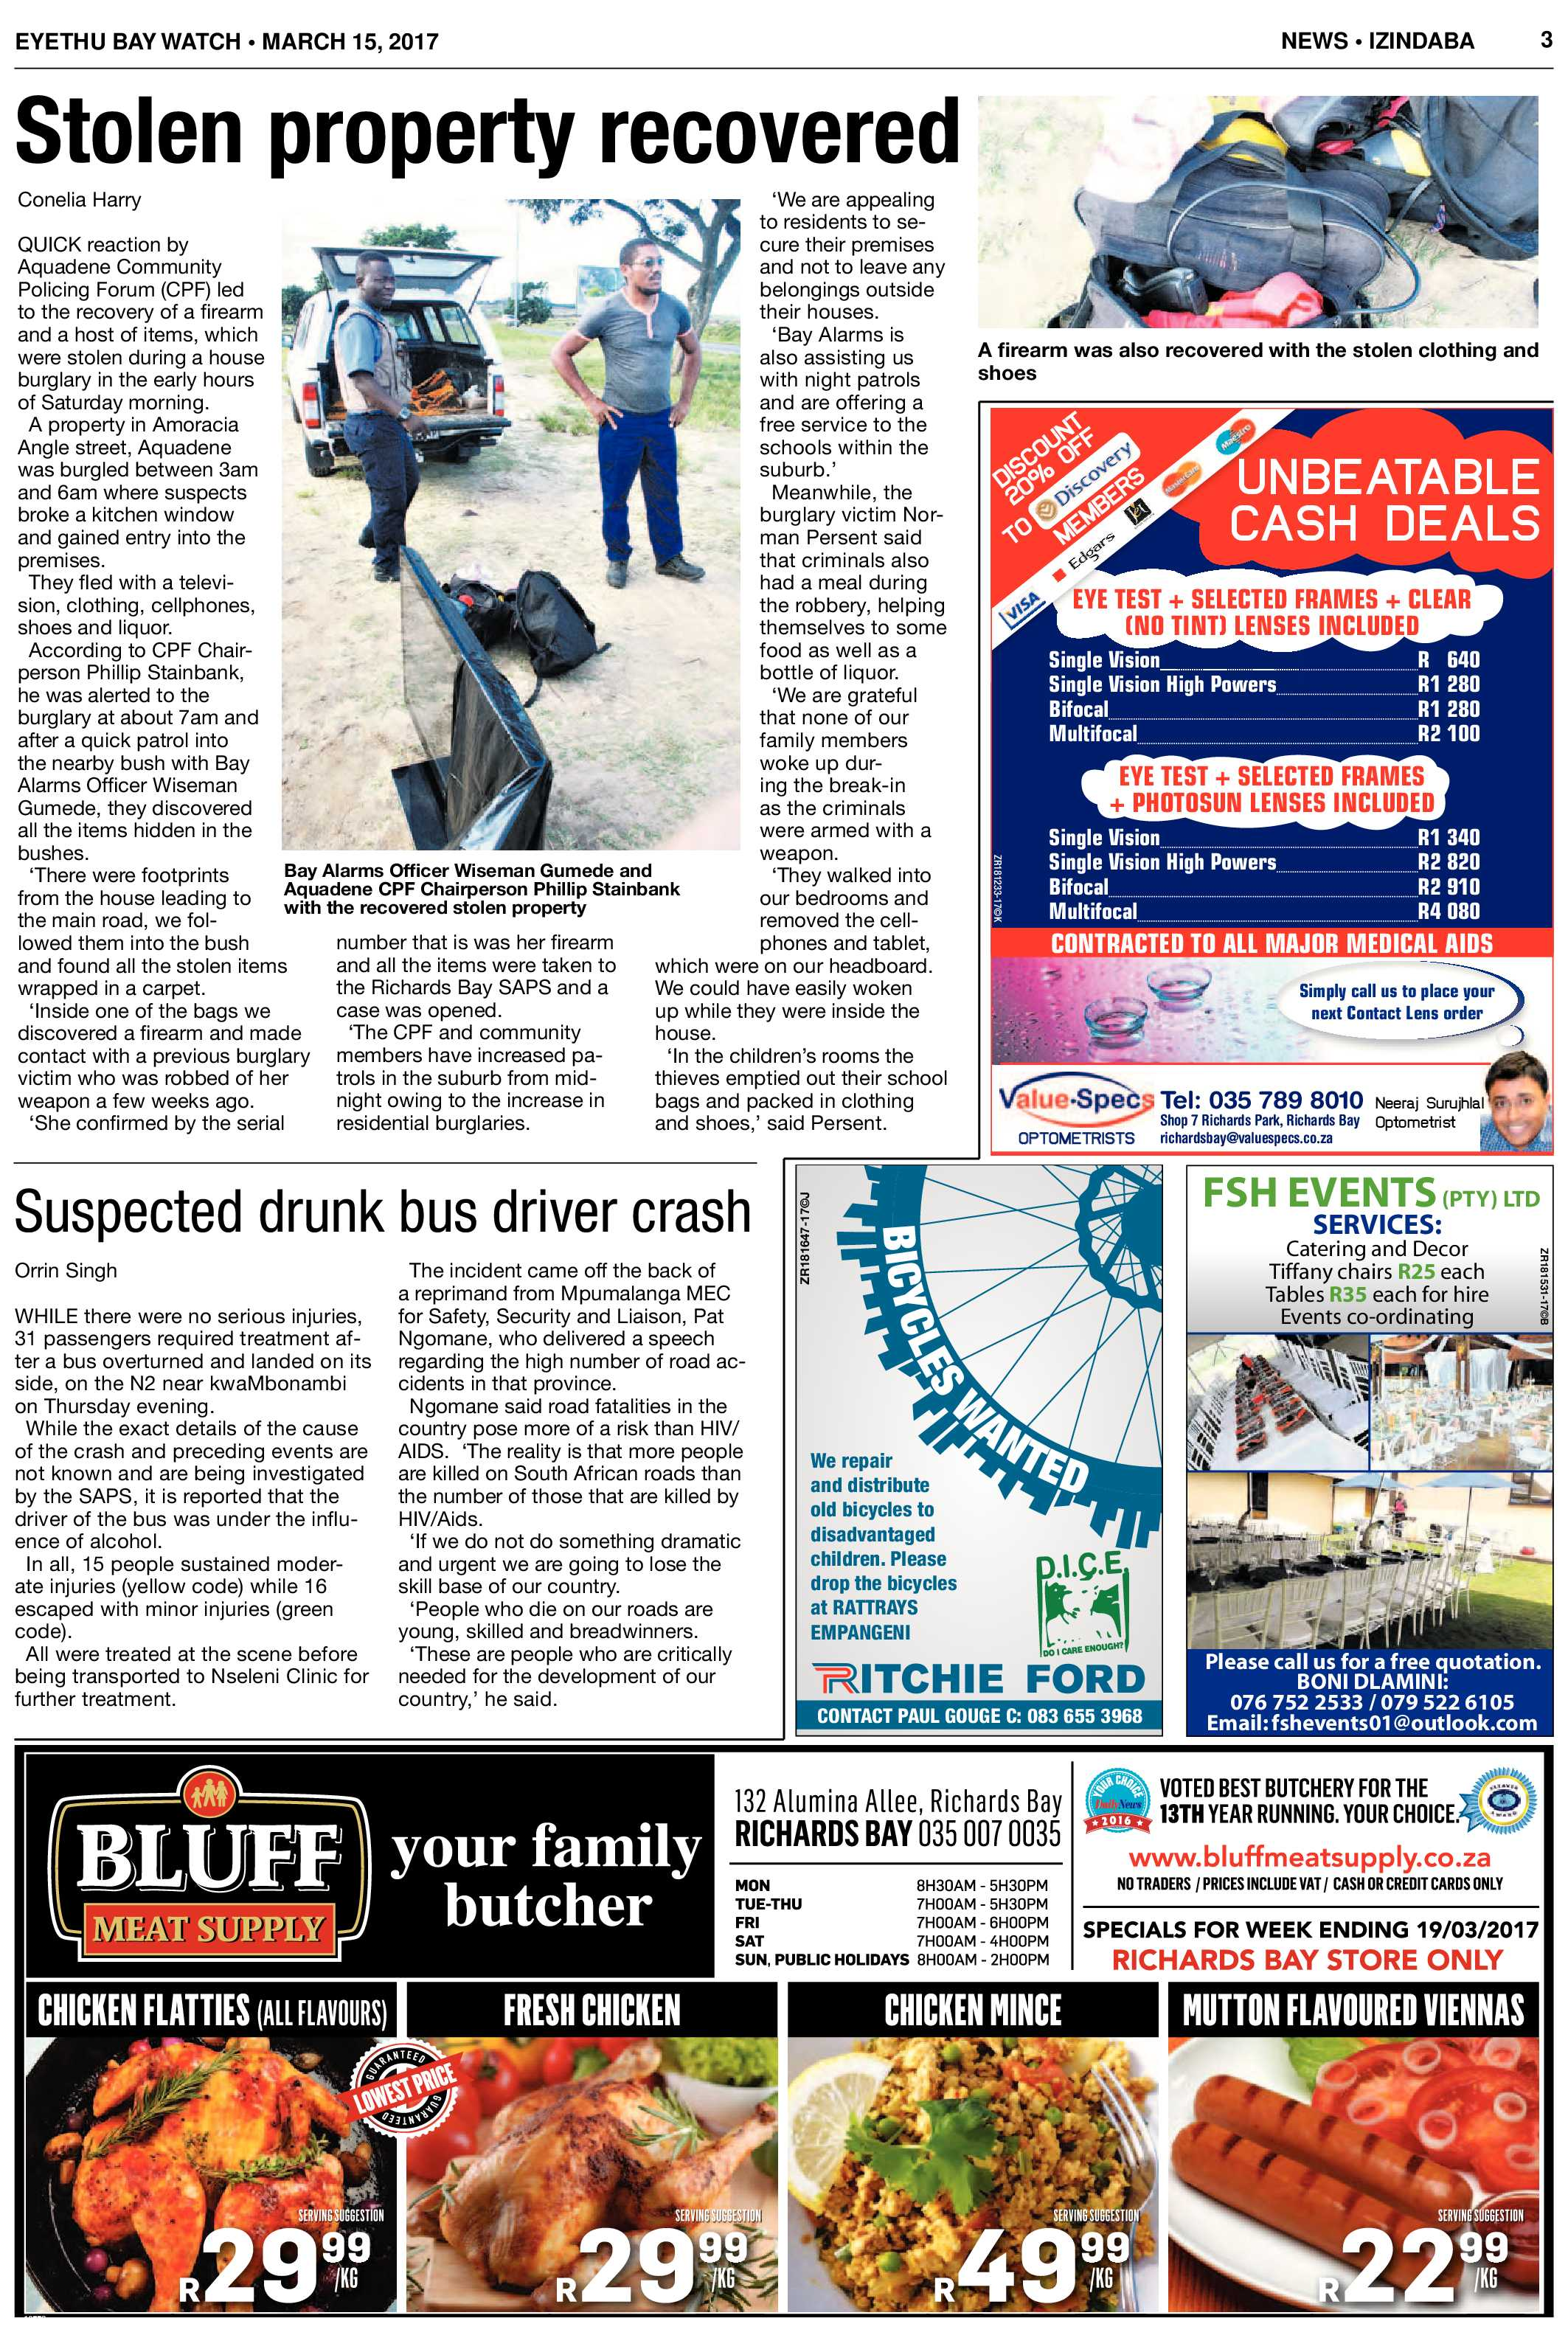 eyethu-baywatch-15-march-epapers-page-3